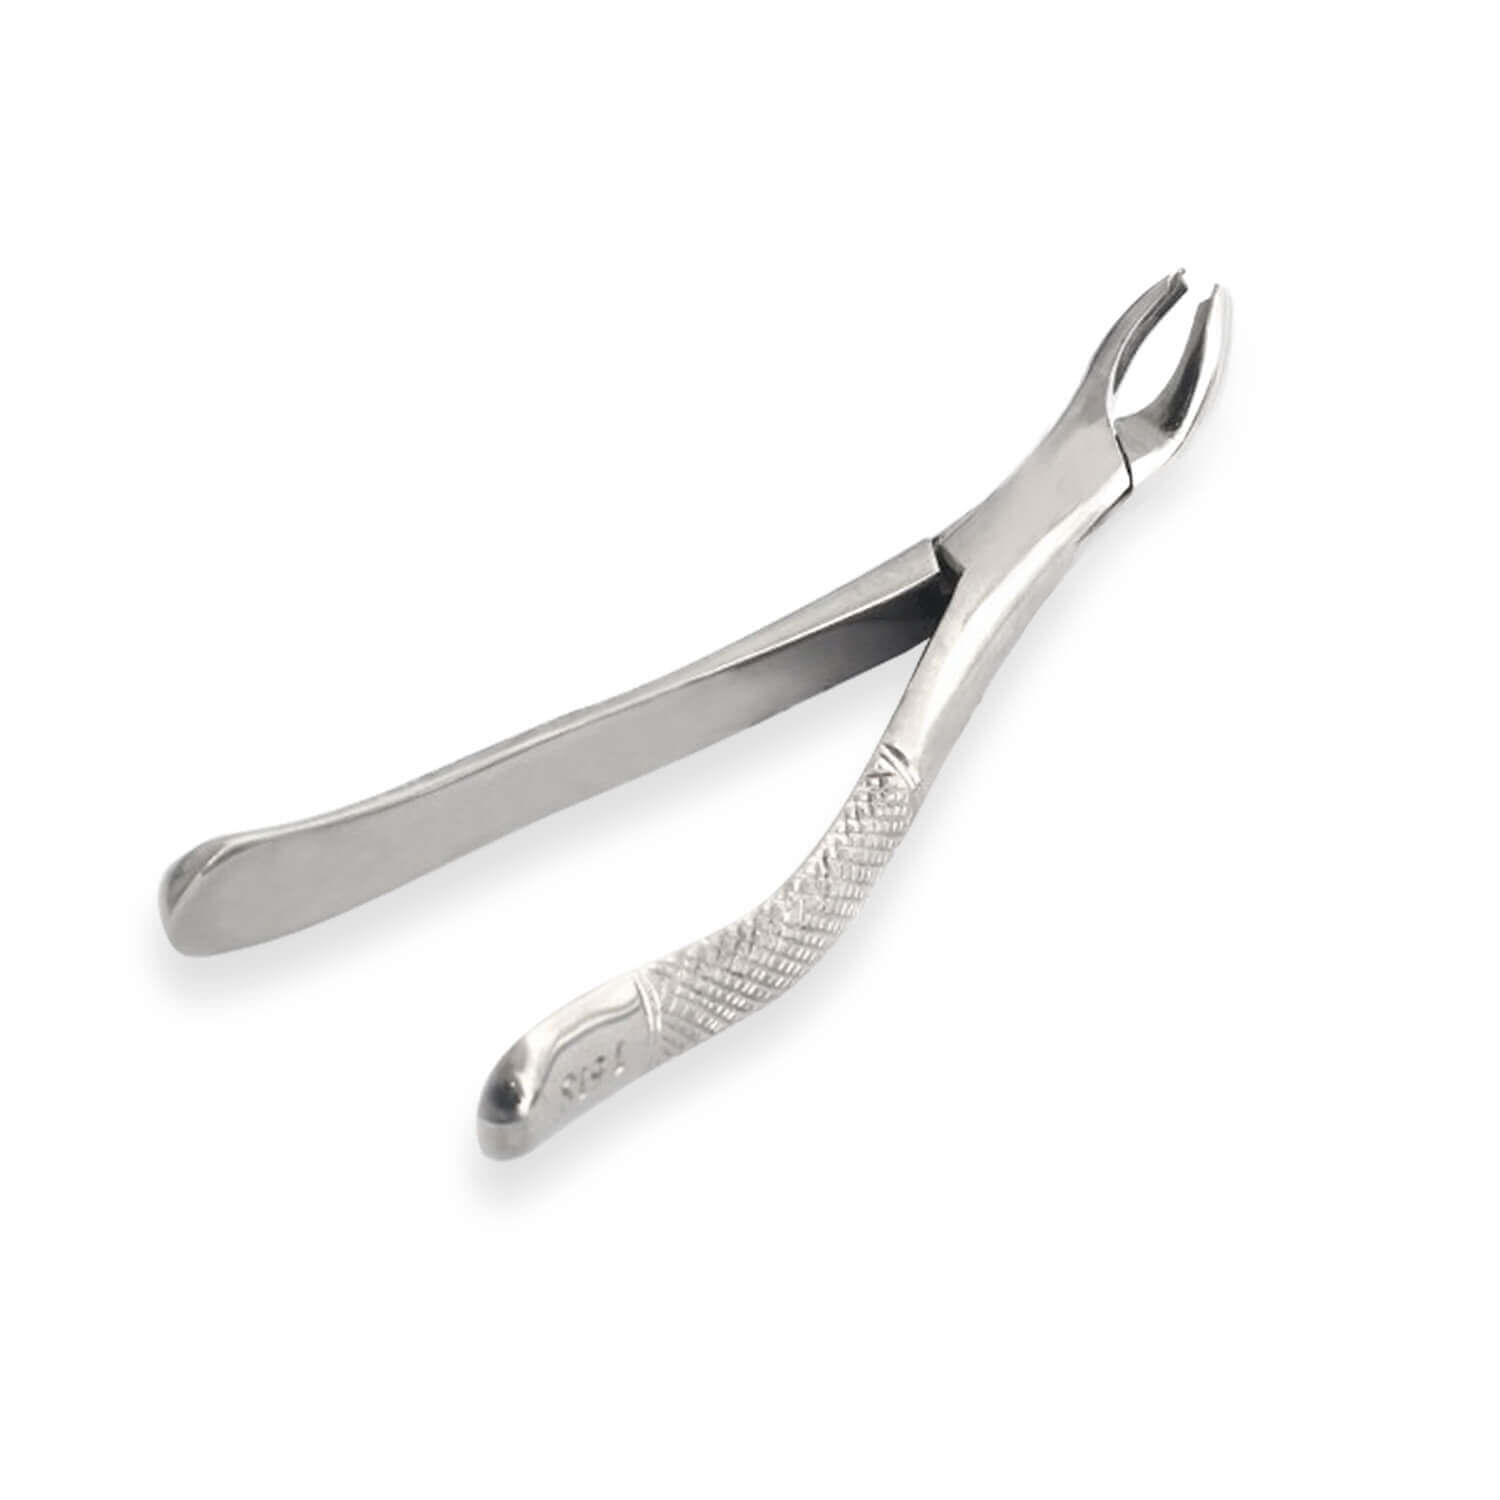 Extracting forceps Dental Surgical #217